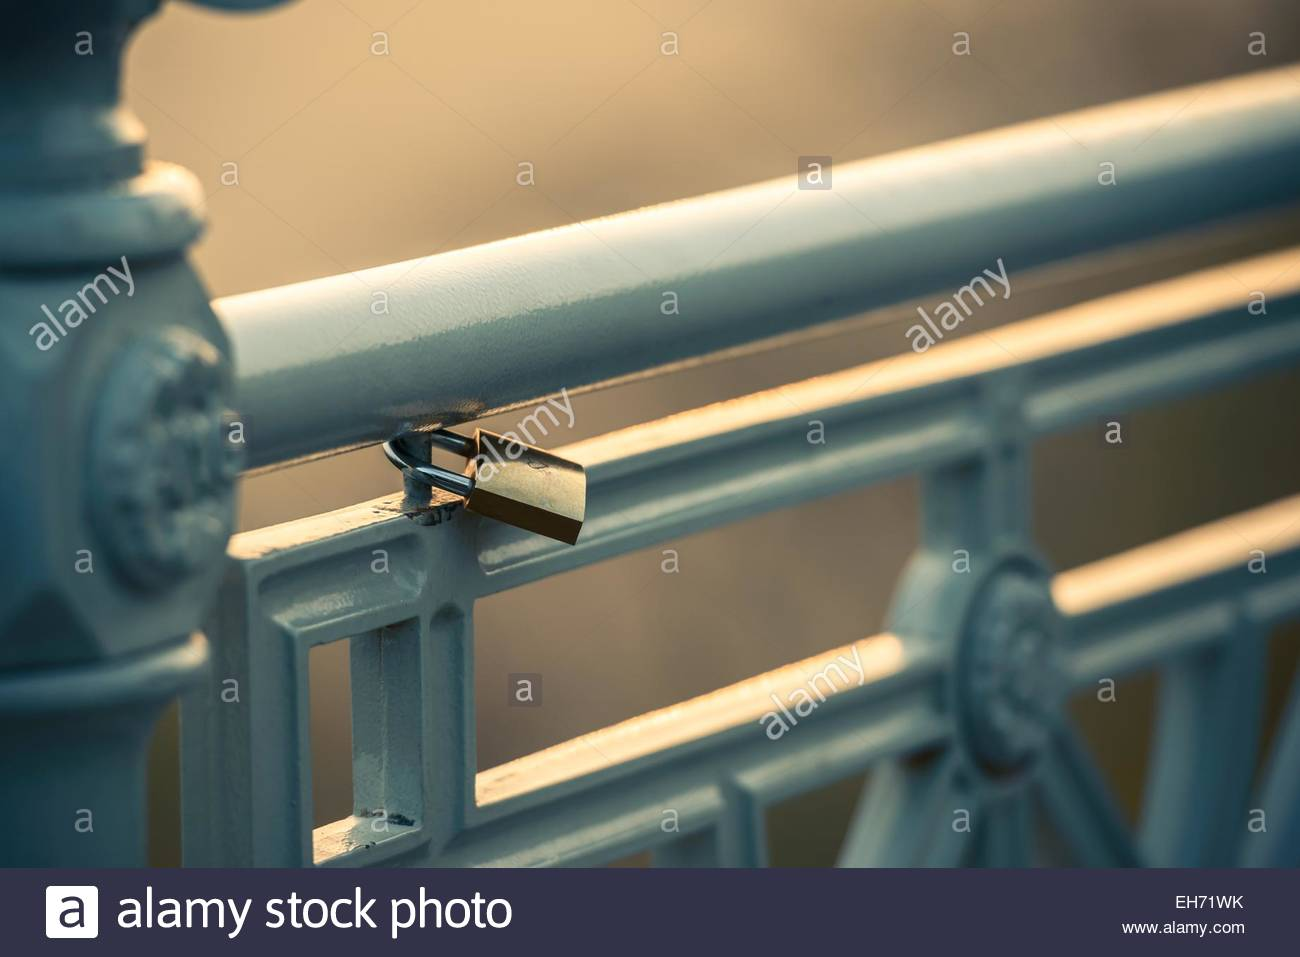 Padlock on fence, symbol of love - Stock Image